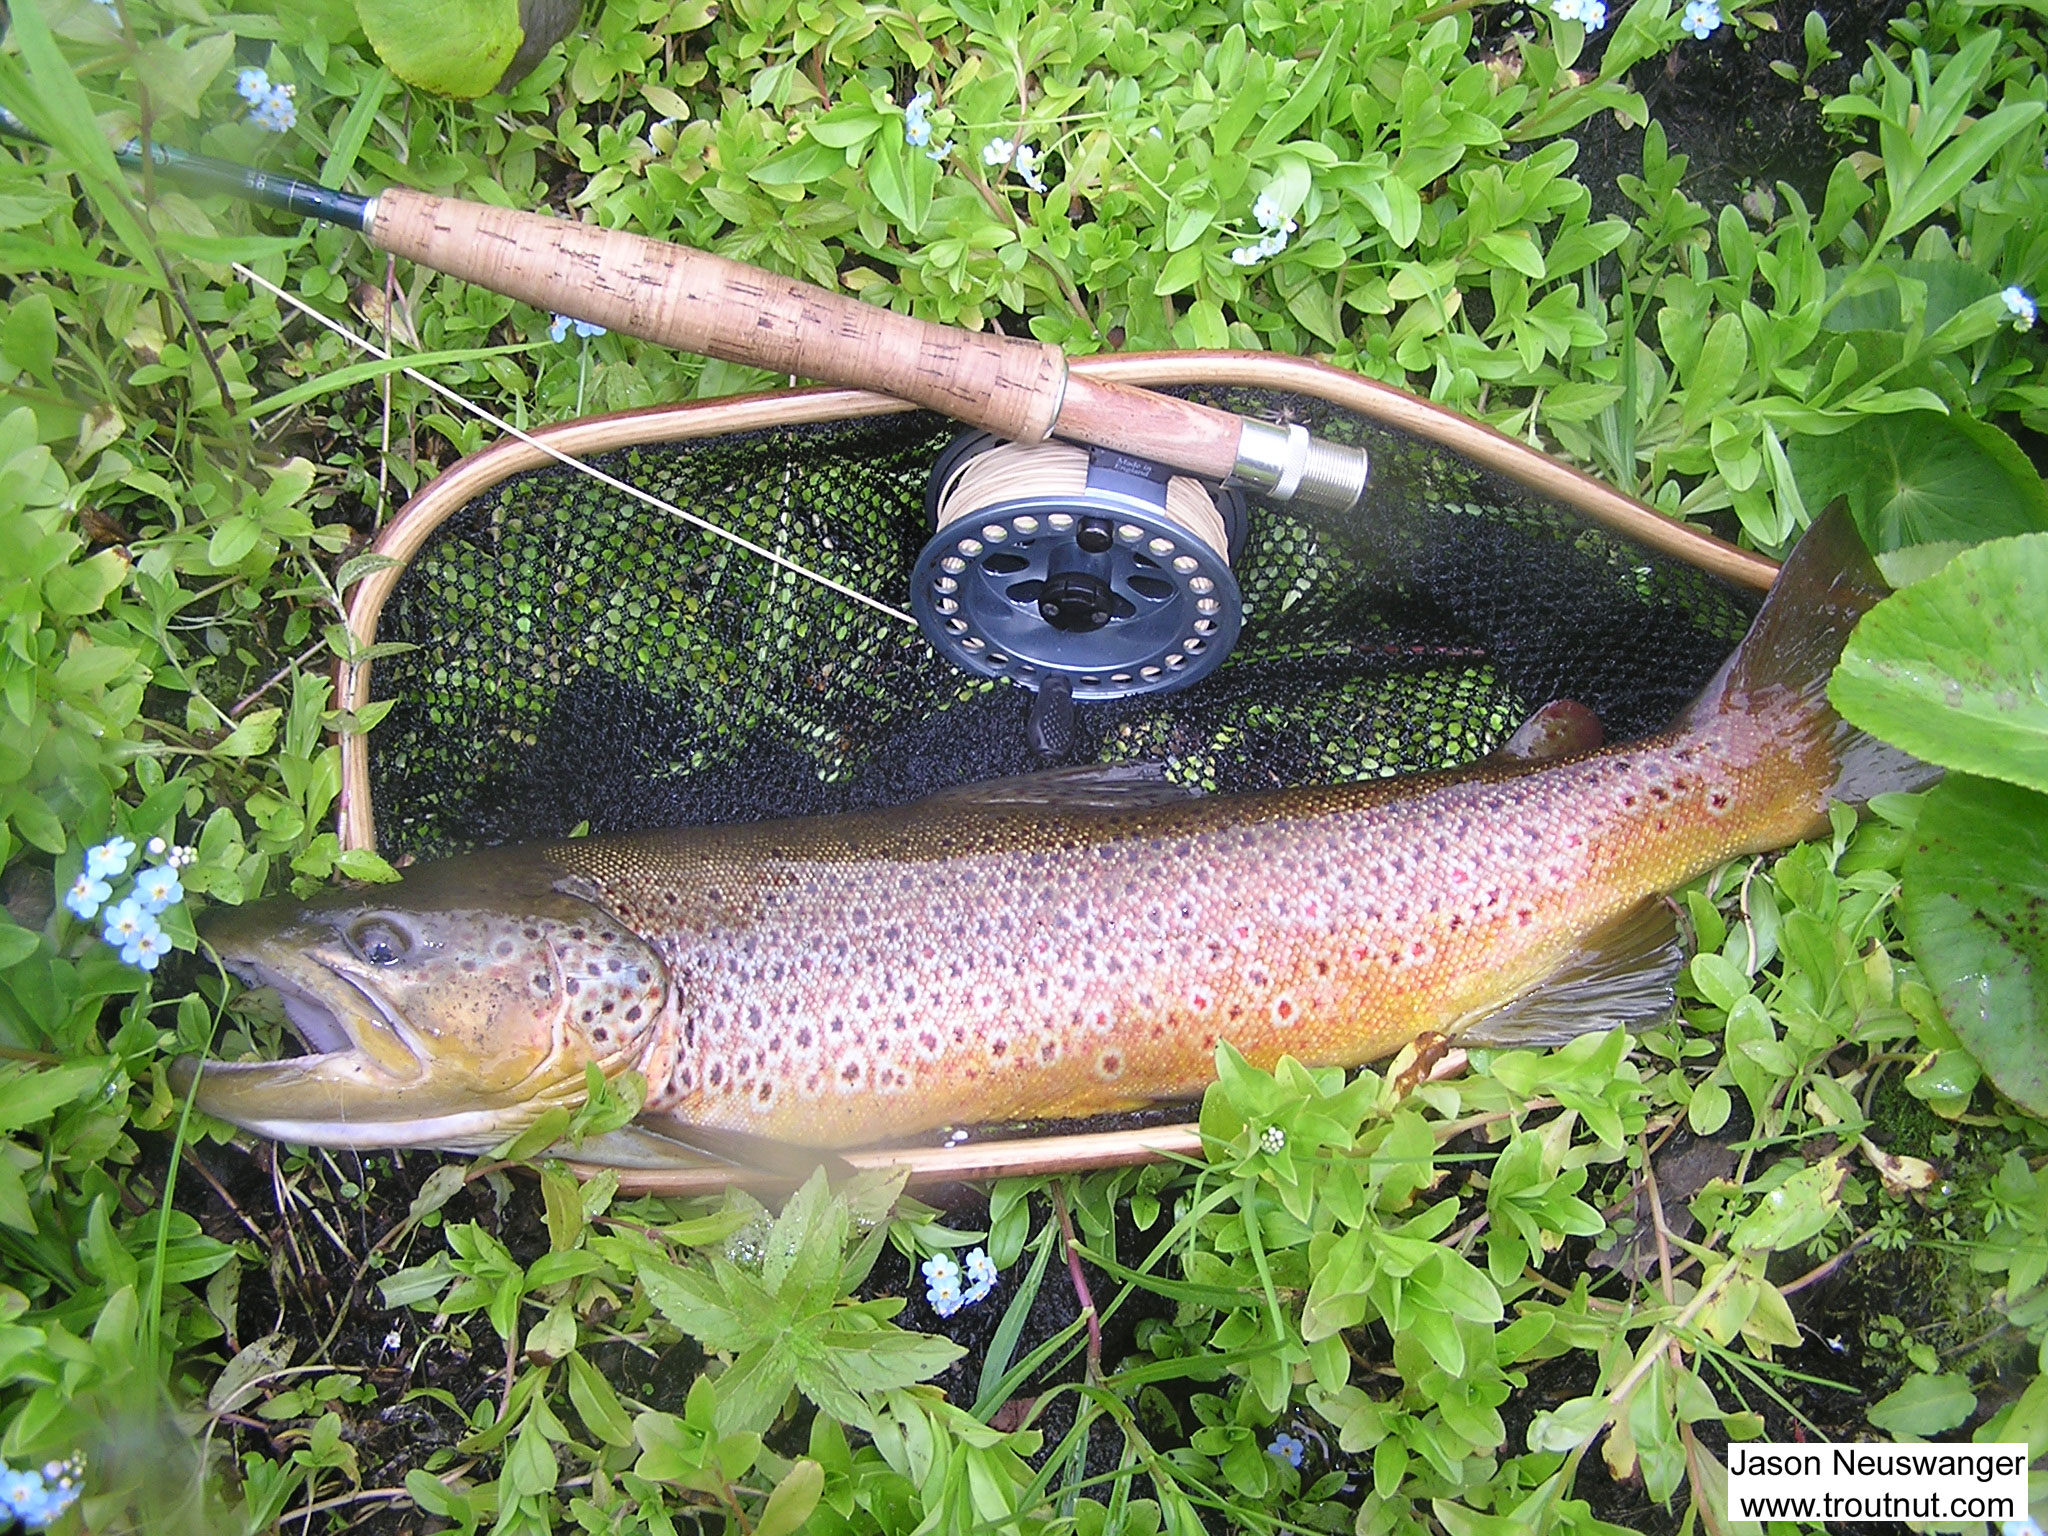 This beautiful 20 inch brown trout took a dry fly placed very tight against some overhanging alders. I was proud of that cast even before the trout smashed my fly. This brown is so vibrantly colored that as I caught glimpses during the fight I began to wonder if it was not a brown, but a monster brook trout.  It turned out to be a very bright red/gold brown trout.  The picture, fine as it is, doesn't do the trout justice. From the Namekagon River in Wisconsin.